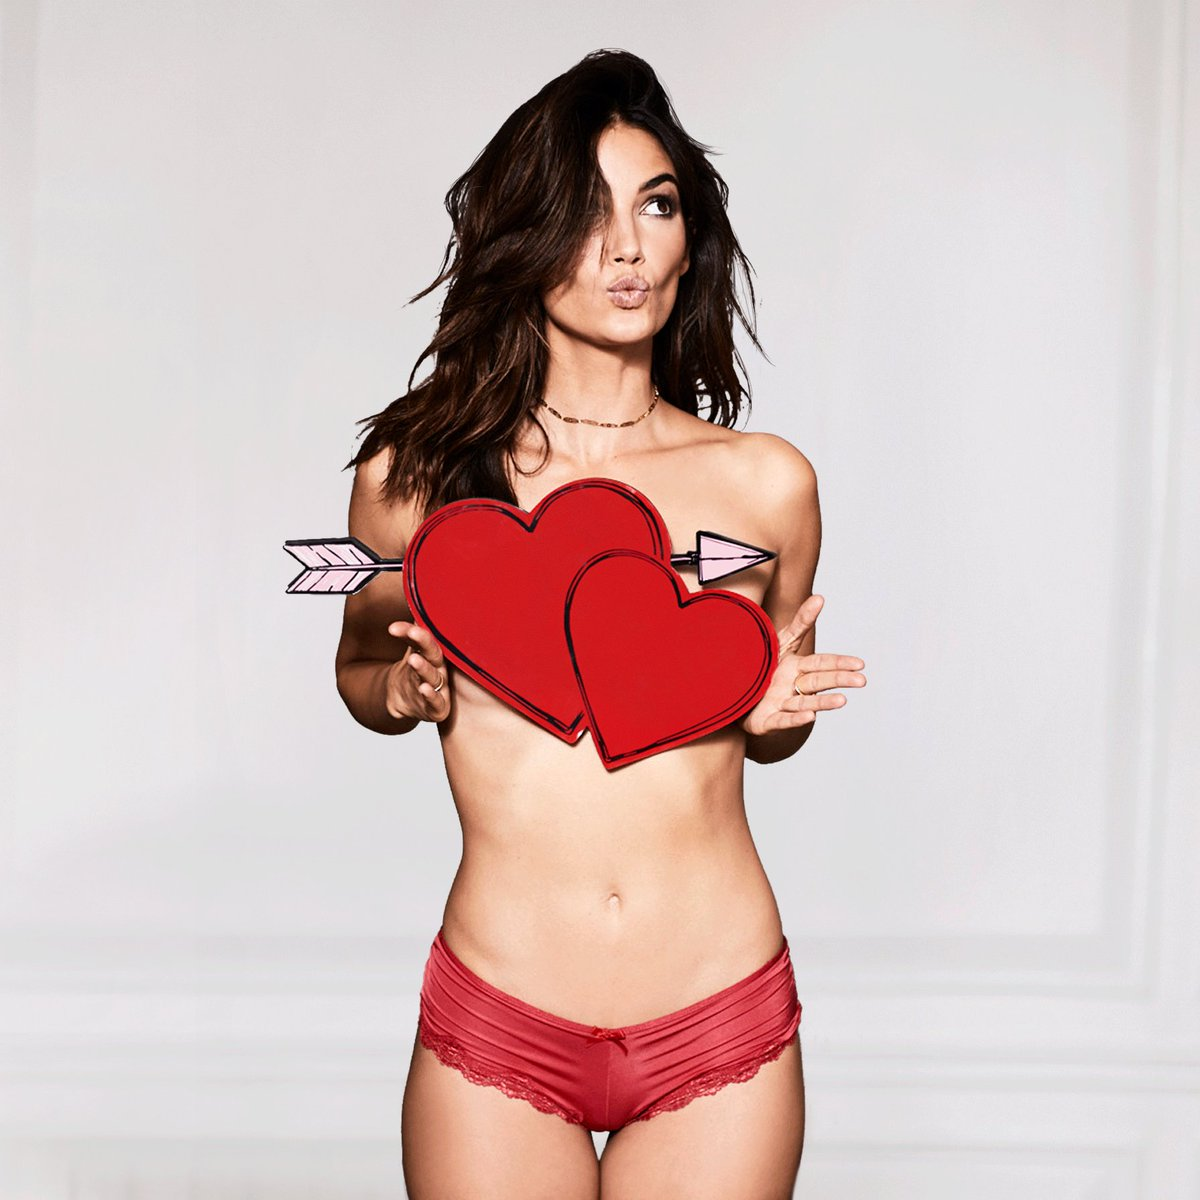 You do you, Valentine. Cheeky panties are 2/$14! ???????? ???????? only. https://t.co/pzJFGqimZo https://t.co/h0bxEImVSo